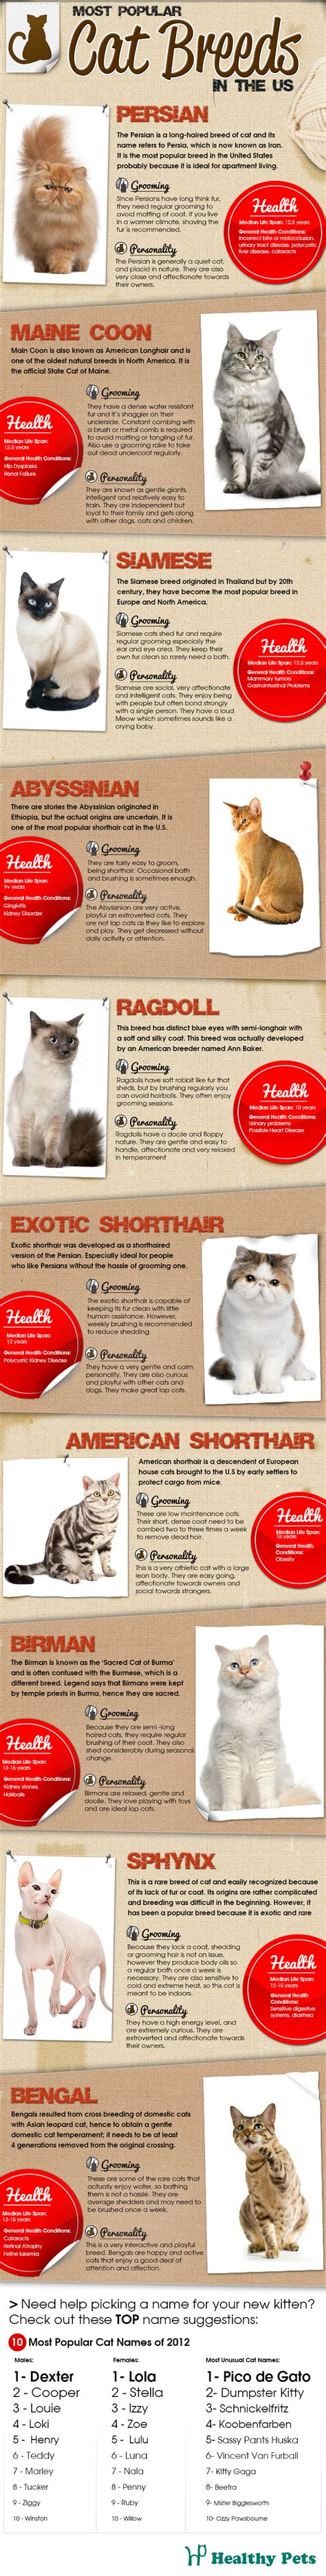 most popular breeds in the us the most popular cat breeds in the us